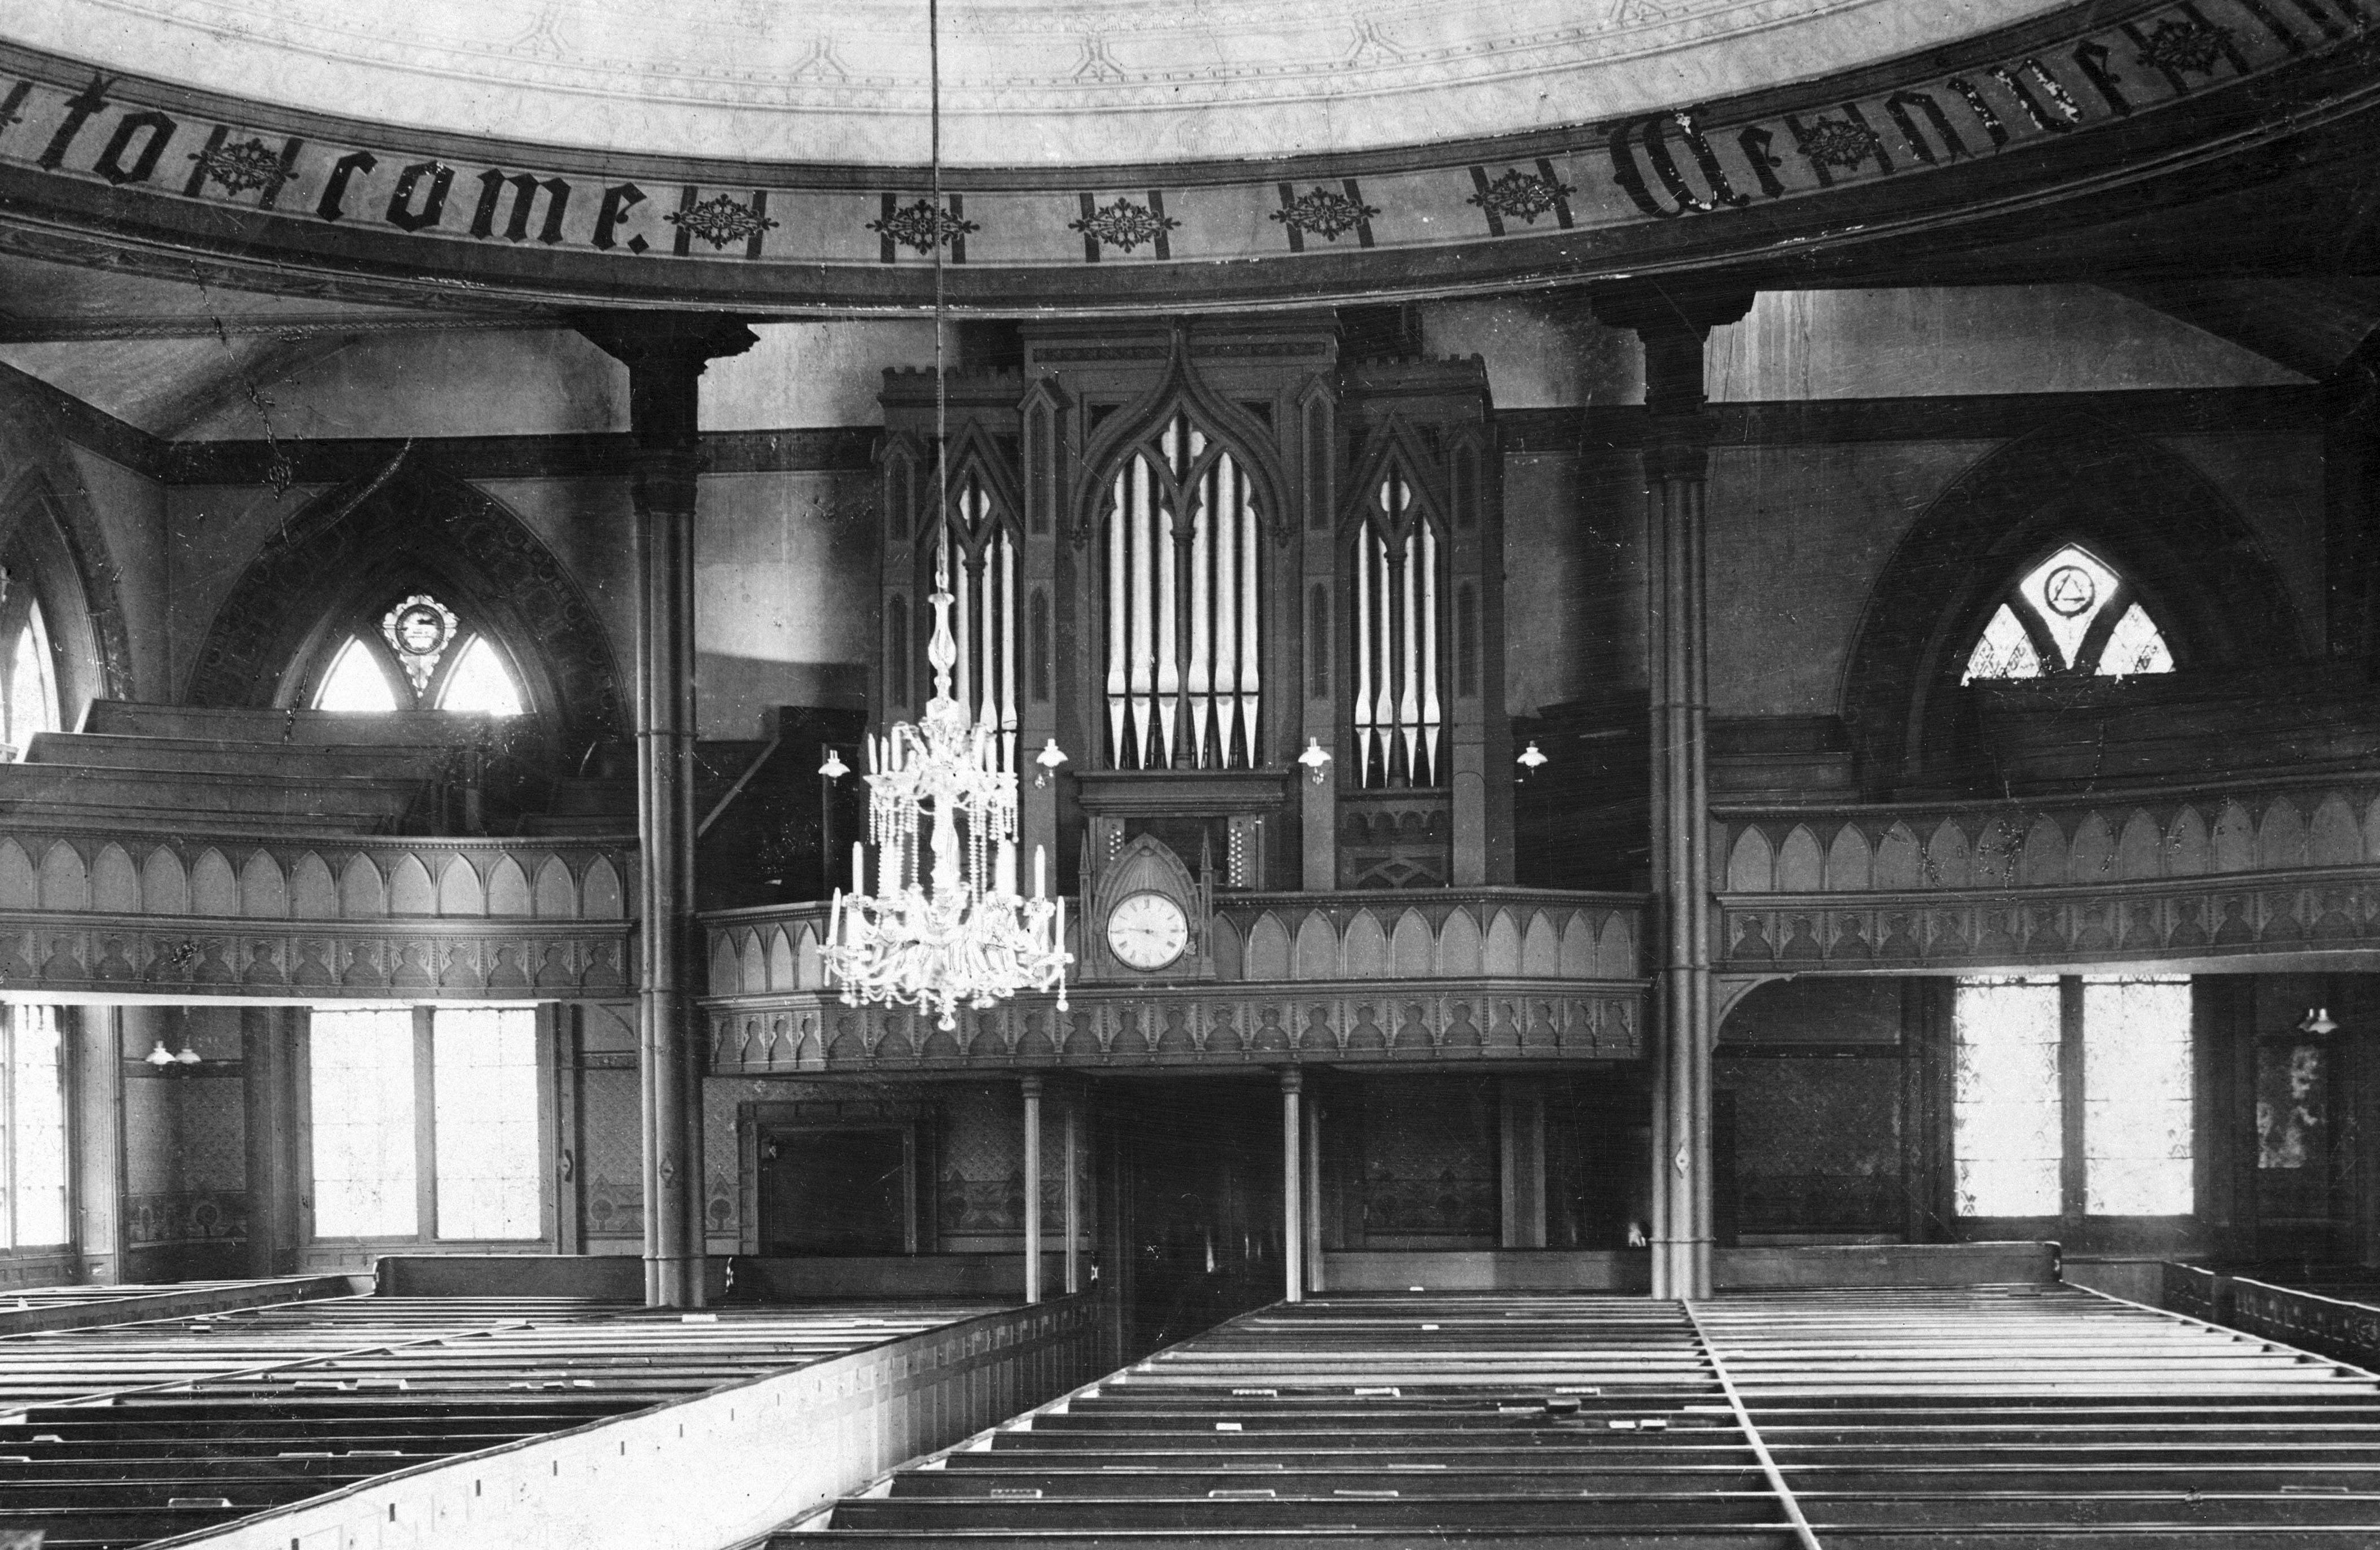 This undated photo from the U.S. Library of Congress shows the former Cathedral of St. John Episcopal Church in Providence, R.I. Diocese officials said slaves worshipped in the elevated pews at the back of the sanctuary, which were later removed. A proposal would convert the shuttered church into the nation's only museum centered on the trans-Atlantic slave trade.